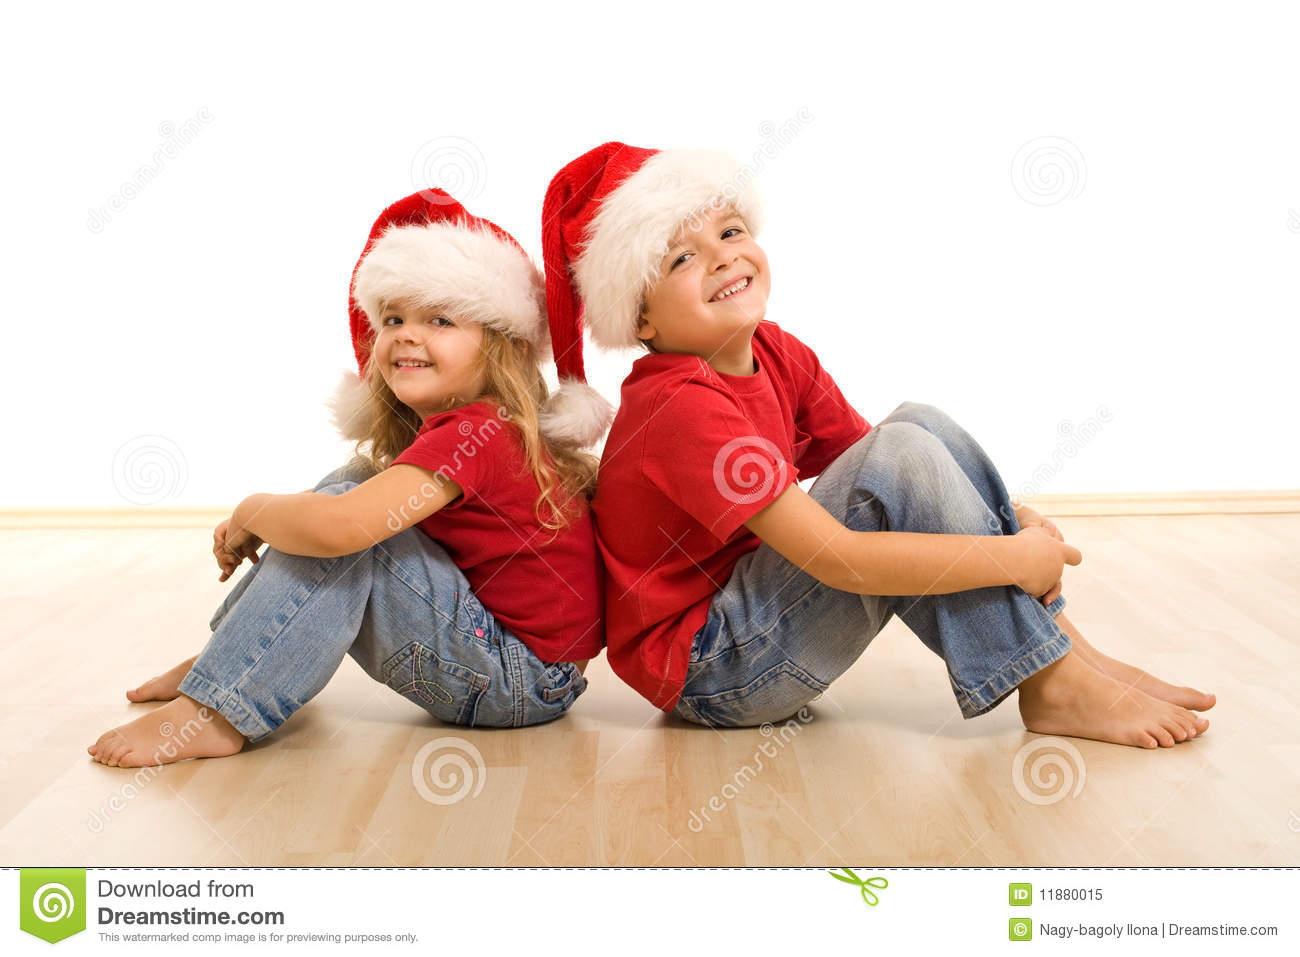 Happy Christmas Kids Sitting On The Floor Stock Image - Image of ...